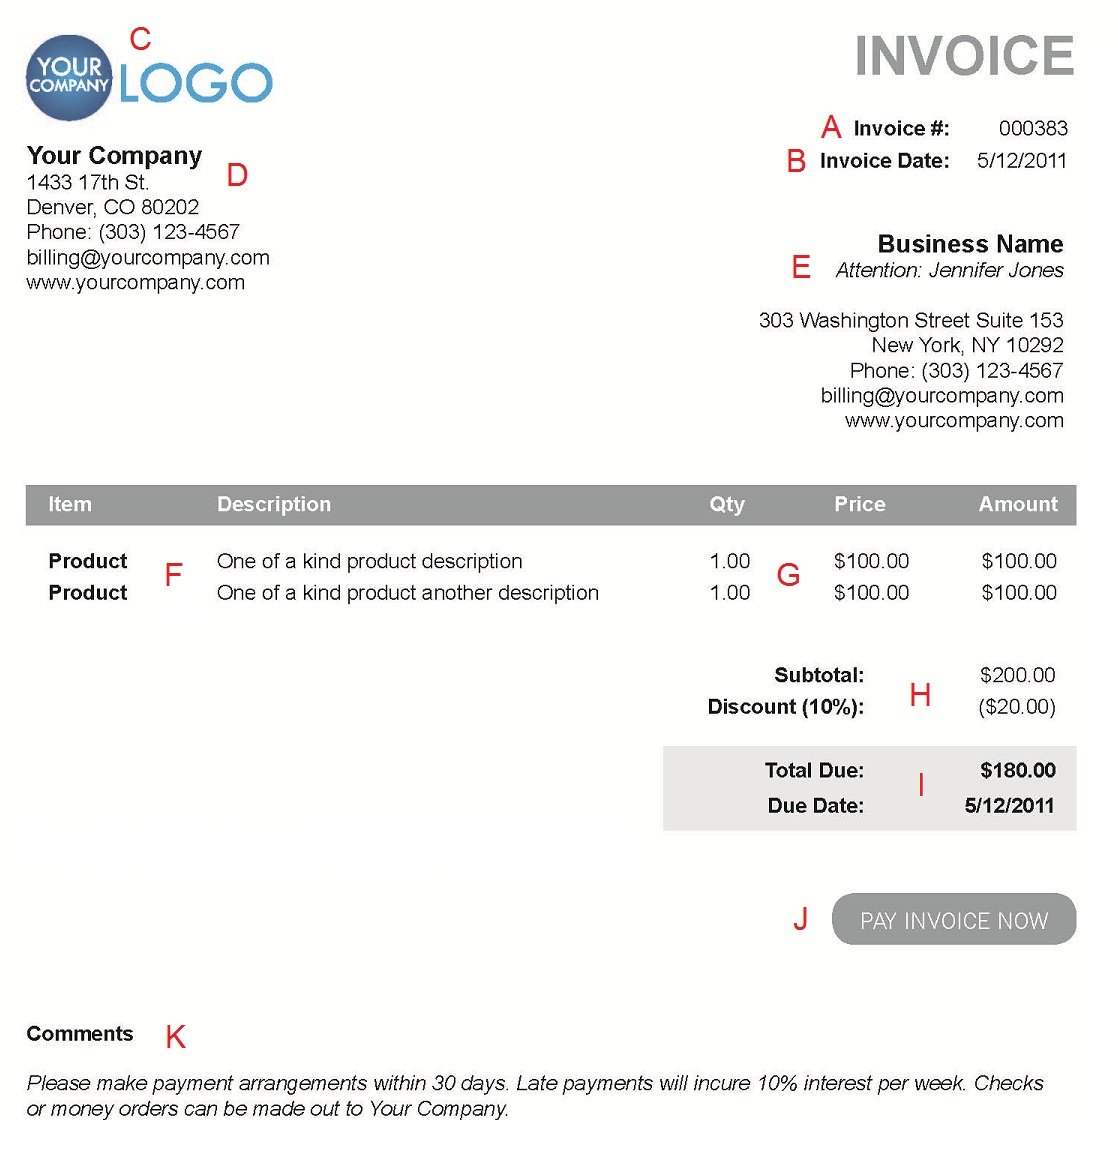 Proatmealus  Stunning The  Different Sections Of An Electronic Payment Invoice With Gorgeous A  With Agreeable Google Mail Read Receipt Also Gross Receipts Tax Delaware In Addition Payroll Receipt And Car Sale Receipt Template As Well As Written Receipt Additionally Used Car Receipt From Paysimplecom With Proatmealus  Gorgeous The  Different Sections Of An Electronic Payment Invoice With Agreeable A  And Stunning Google Mail Read Receipt Also Gross Receipts Tax Delaware In Addition Payroll Receipt From Paysimplecom